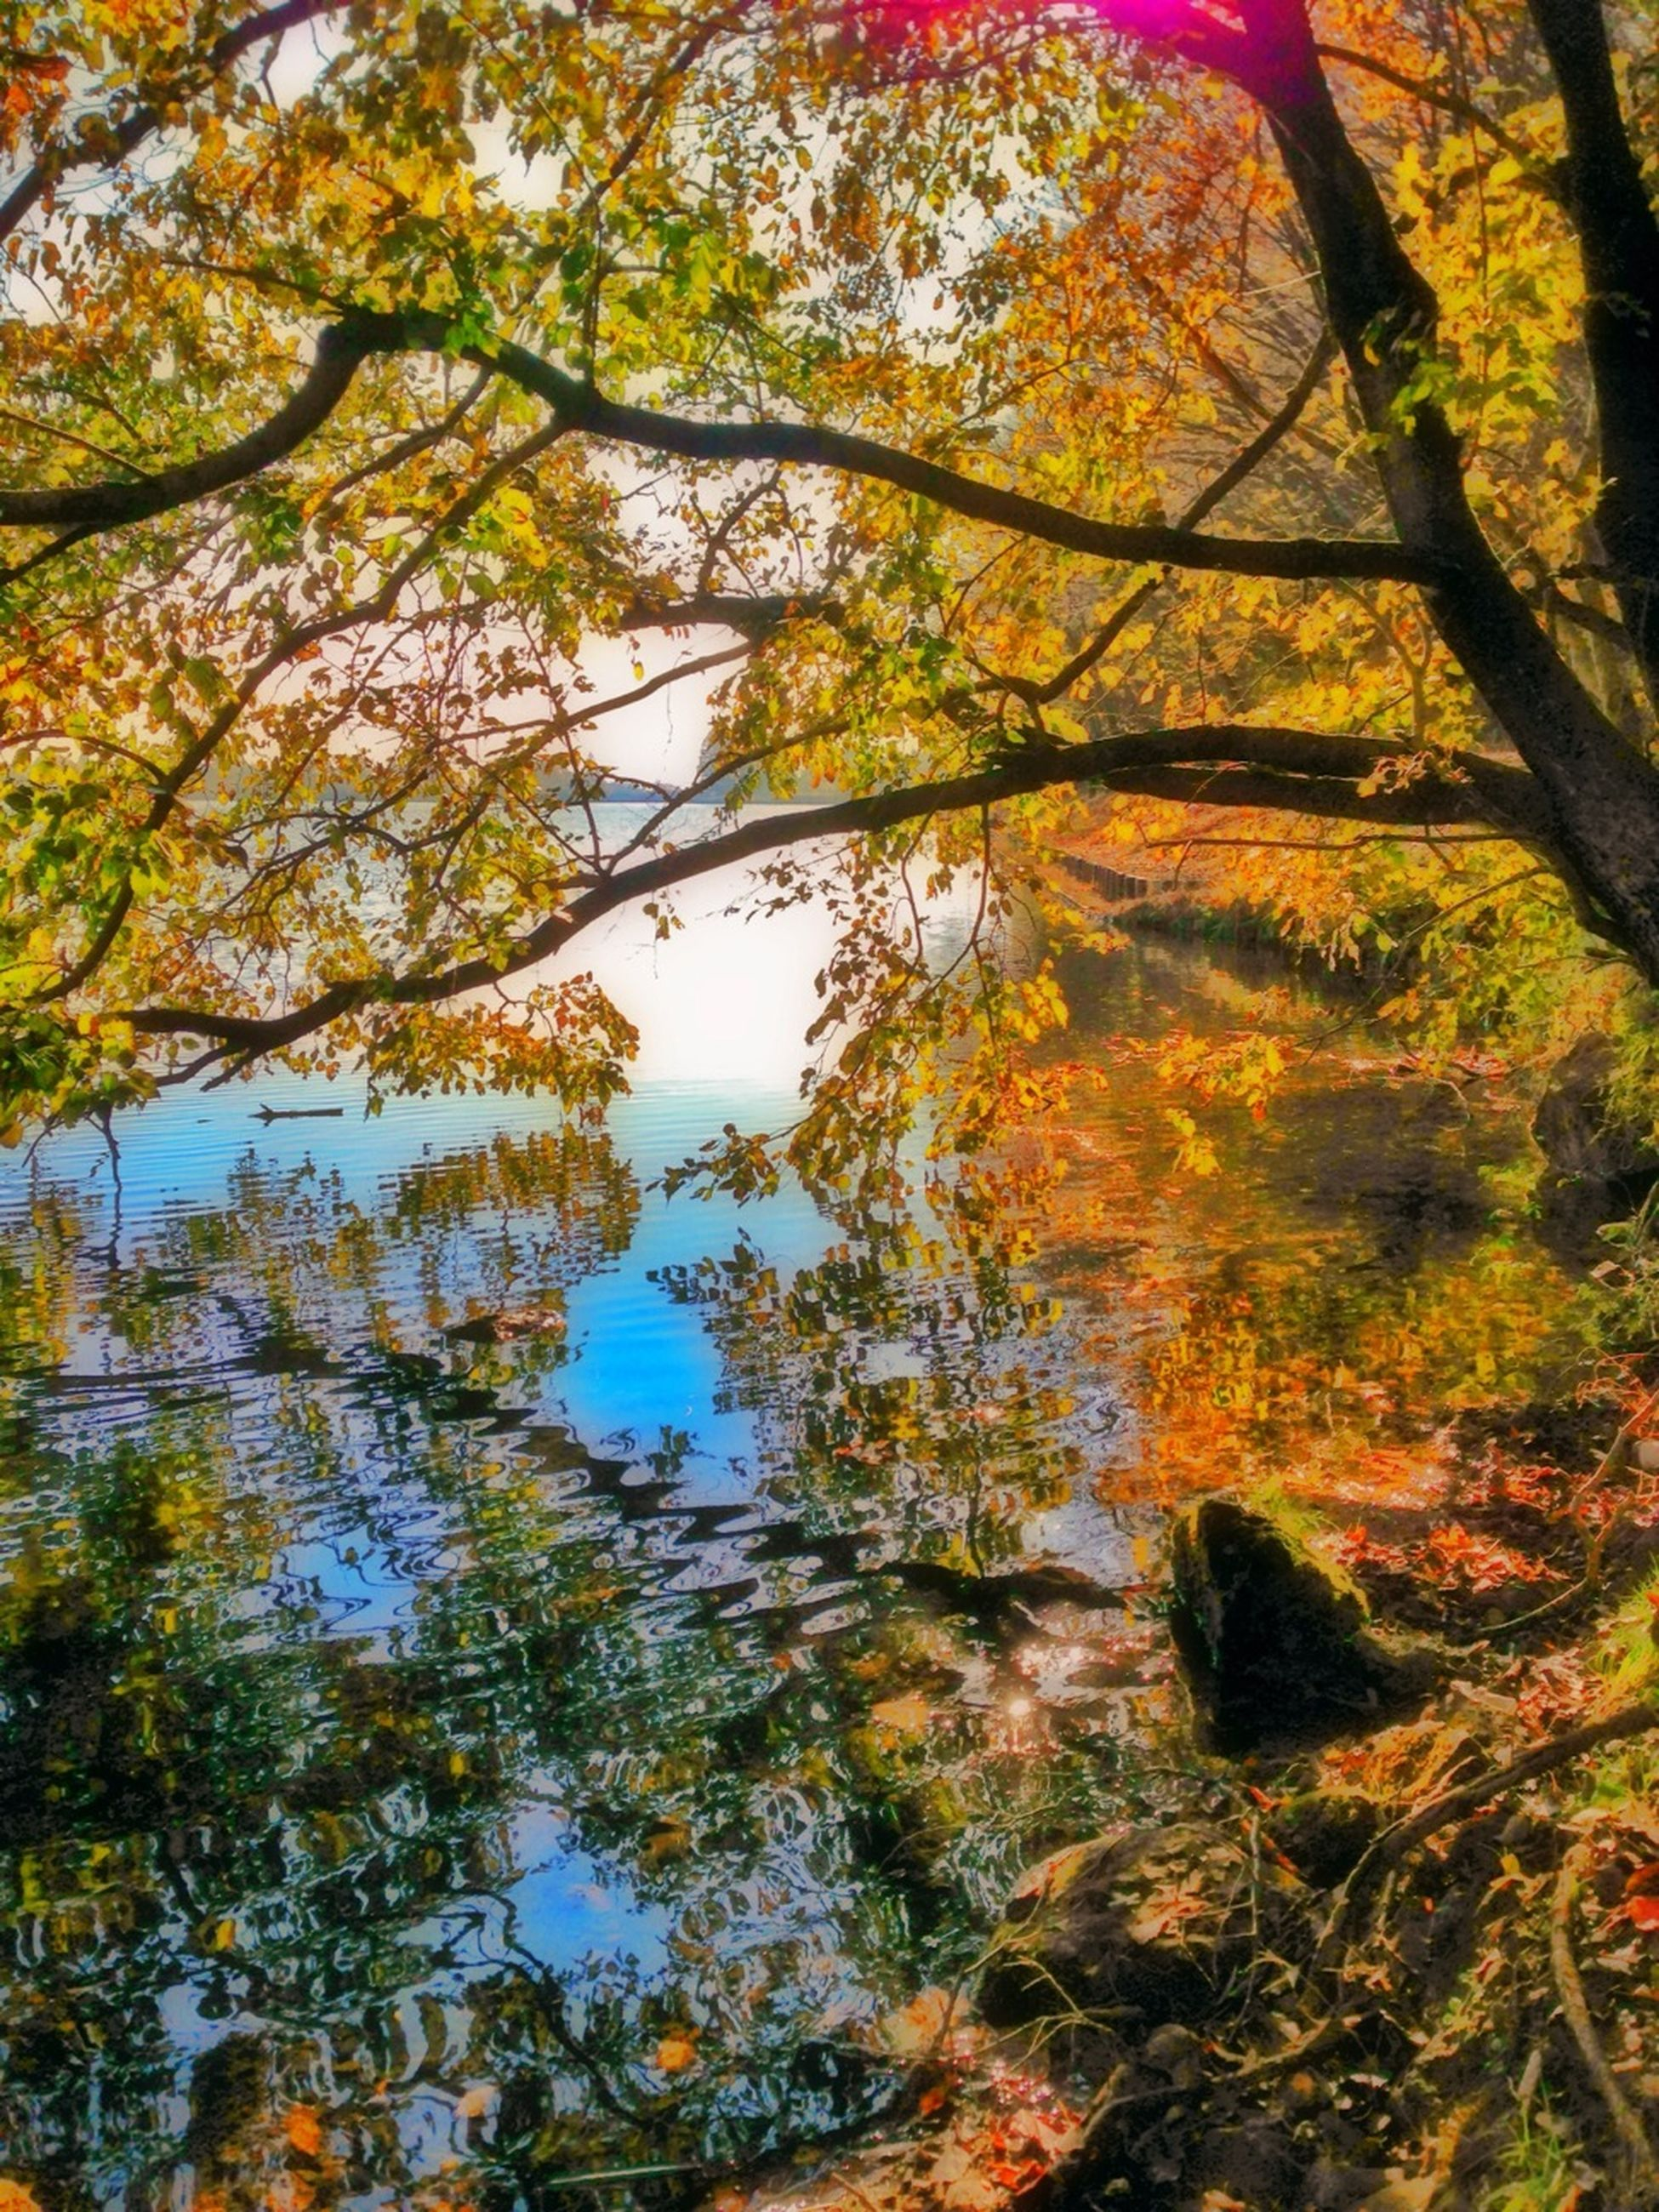 tree, autumn, tranquility, branch, beauty in nature, change, nature, growth, tranquil scene, scenics, forest, tree trunk, low angle view, season, idyllic, day, leaf, no people, outdoors, sunlight